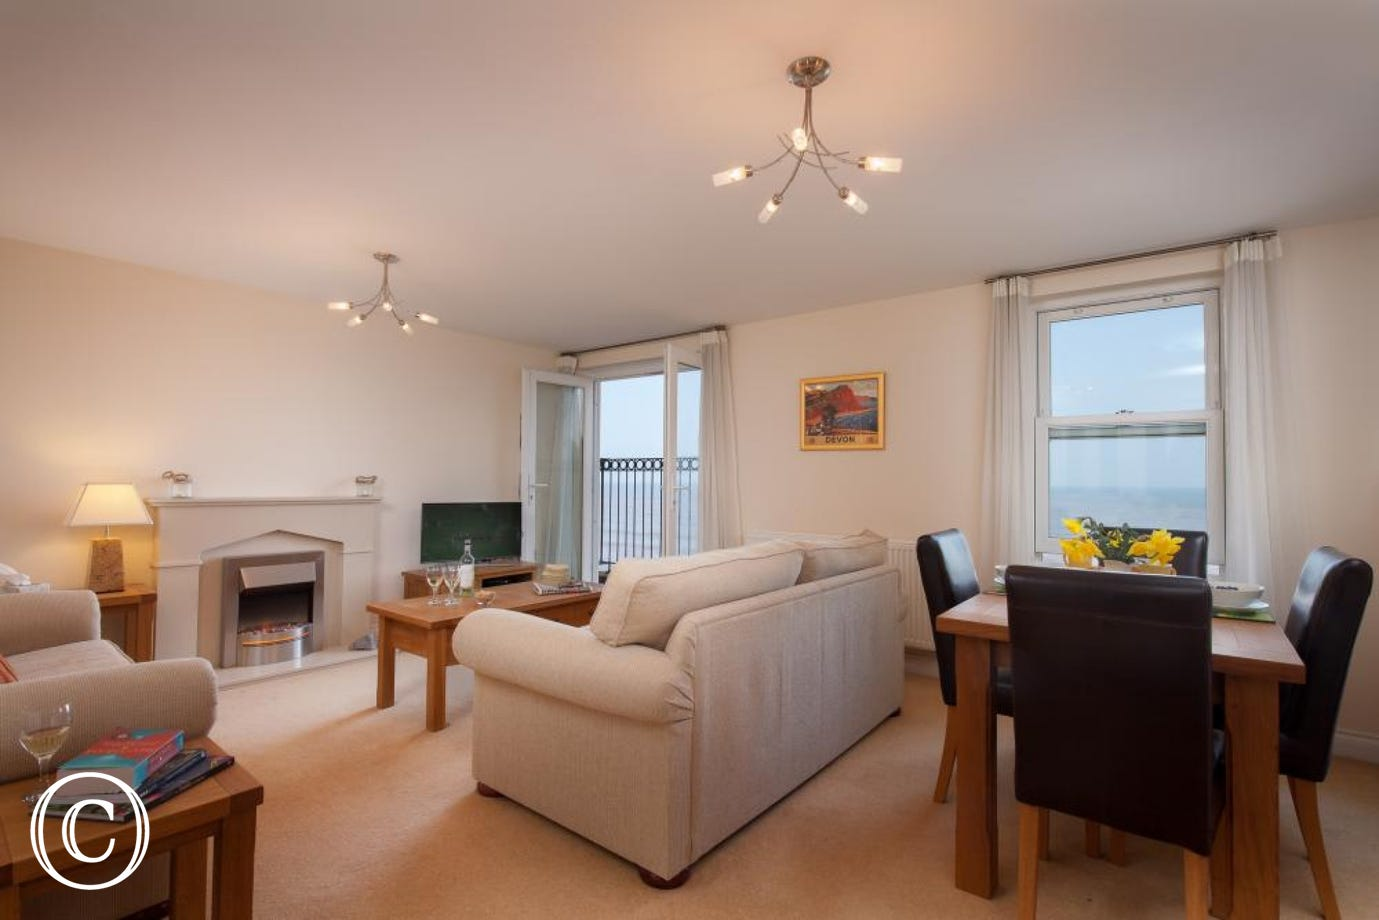 Open Plan Sea View Holiday Apartment at 16 Great Cliff in Dawlish, South Devon